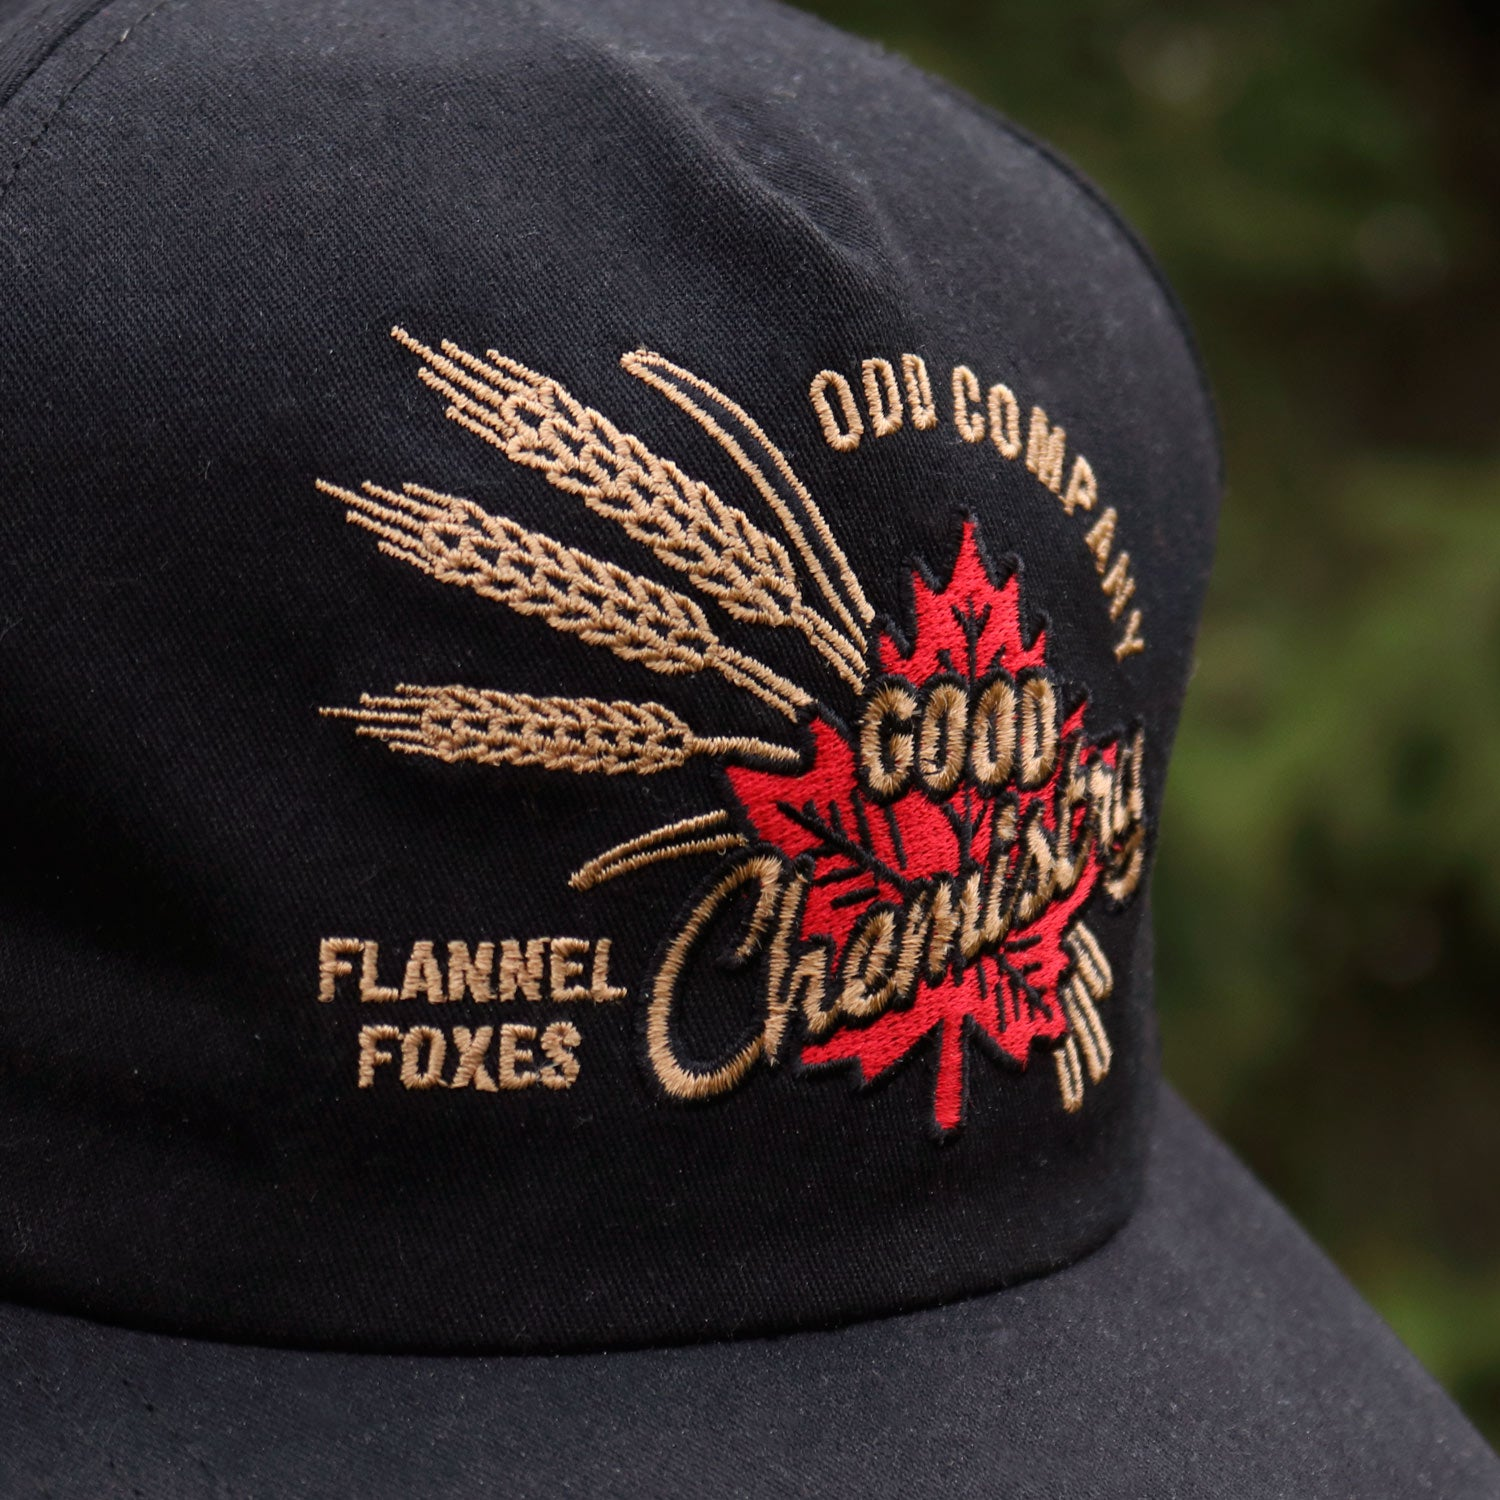 Flannel Foxes X Odd Company – Good Chemistry Hat